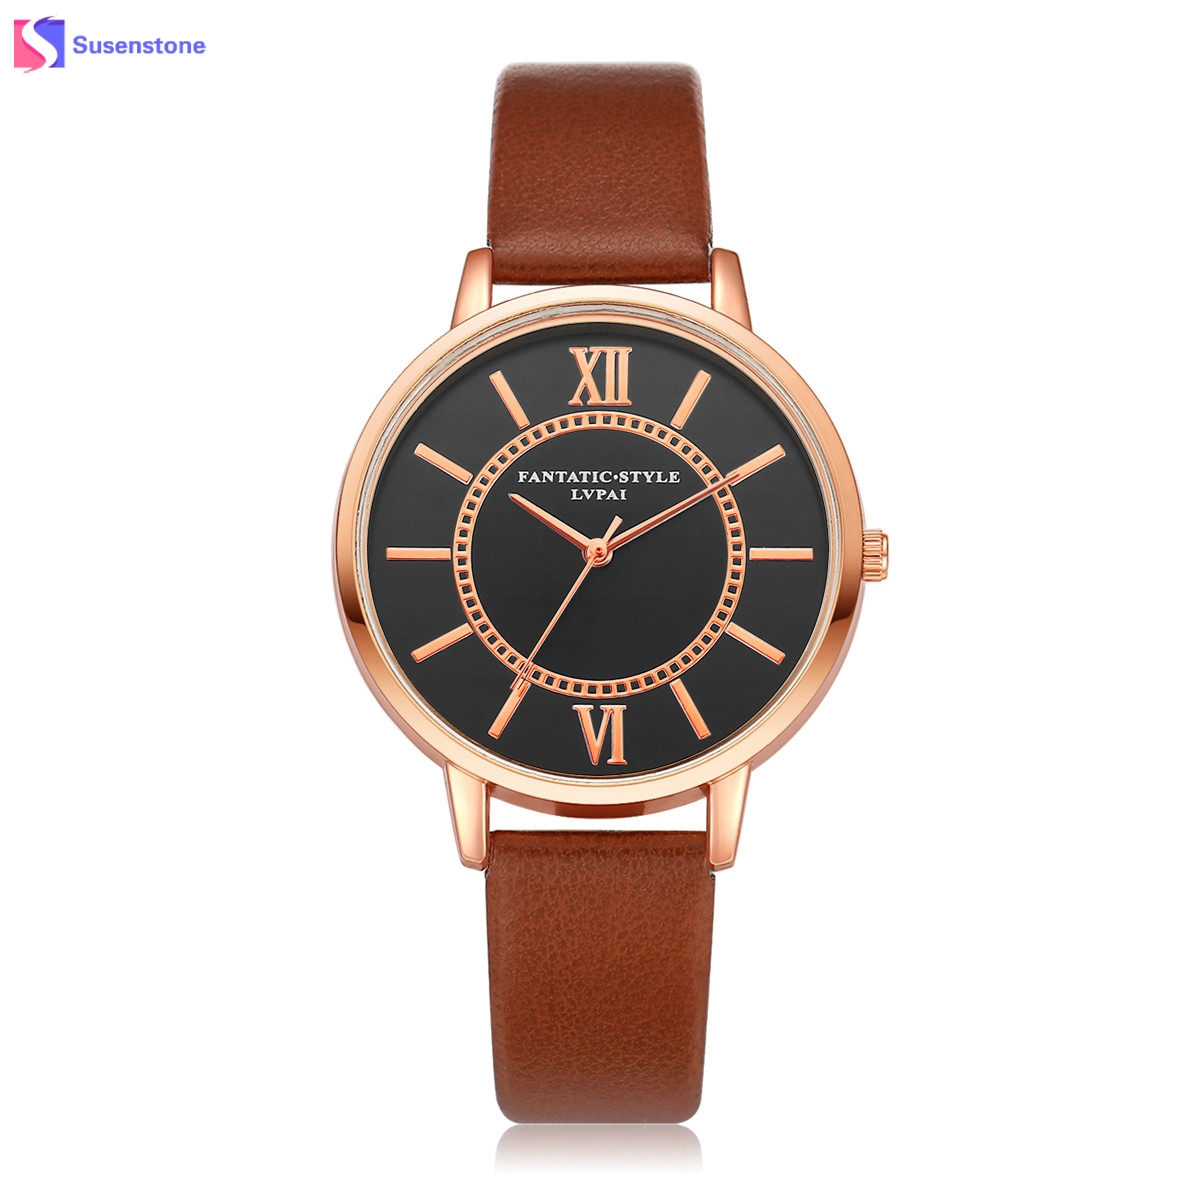 Luxury Watch Women Quartz Wristwatch Clock Leather Band Roman Numerals Simple Design Ladies Dress Gift Watches relogio feminino cheap fashion glitter dial clock watch women casual pu leather analog quartz watch roman numerals dress watches wristwatch